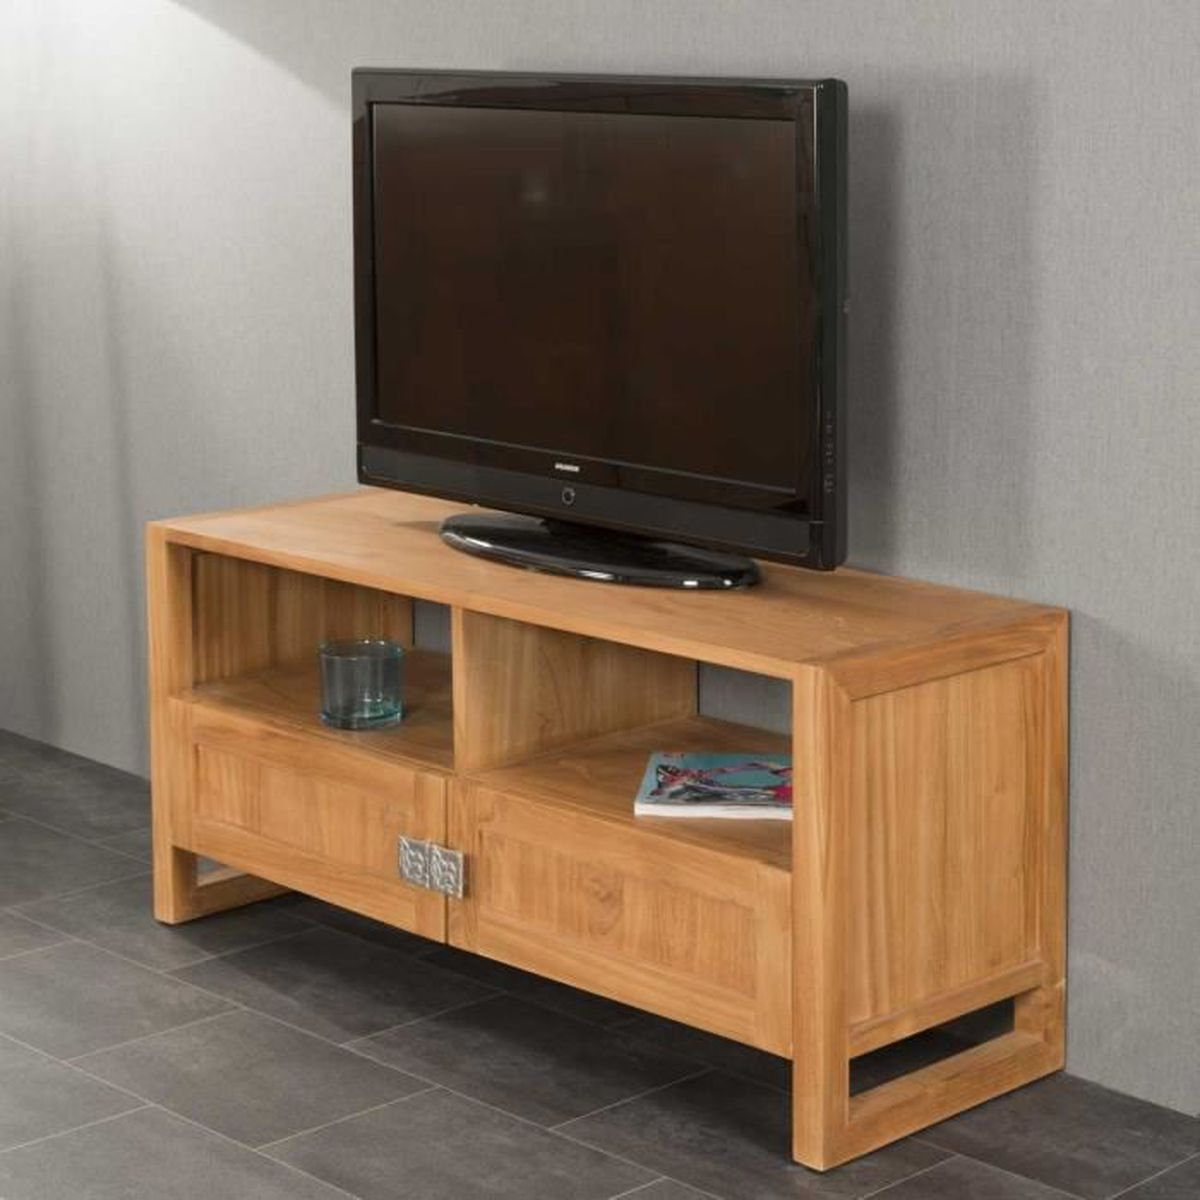 meuble tv en teck thea 110 achat vente meuble tv meuble tv en teck thea 110 soldes cdiscount. Black Bedroom Furniture Sets. Home Design Ideas